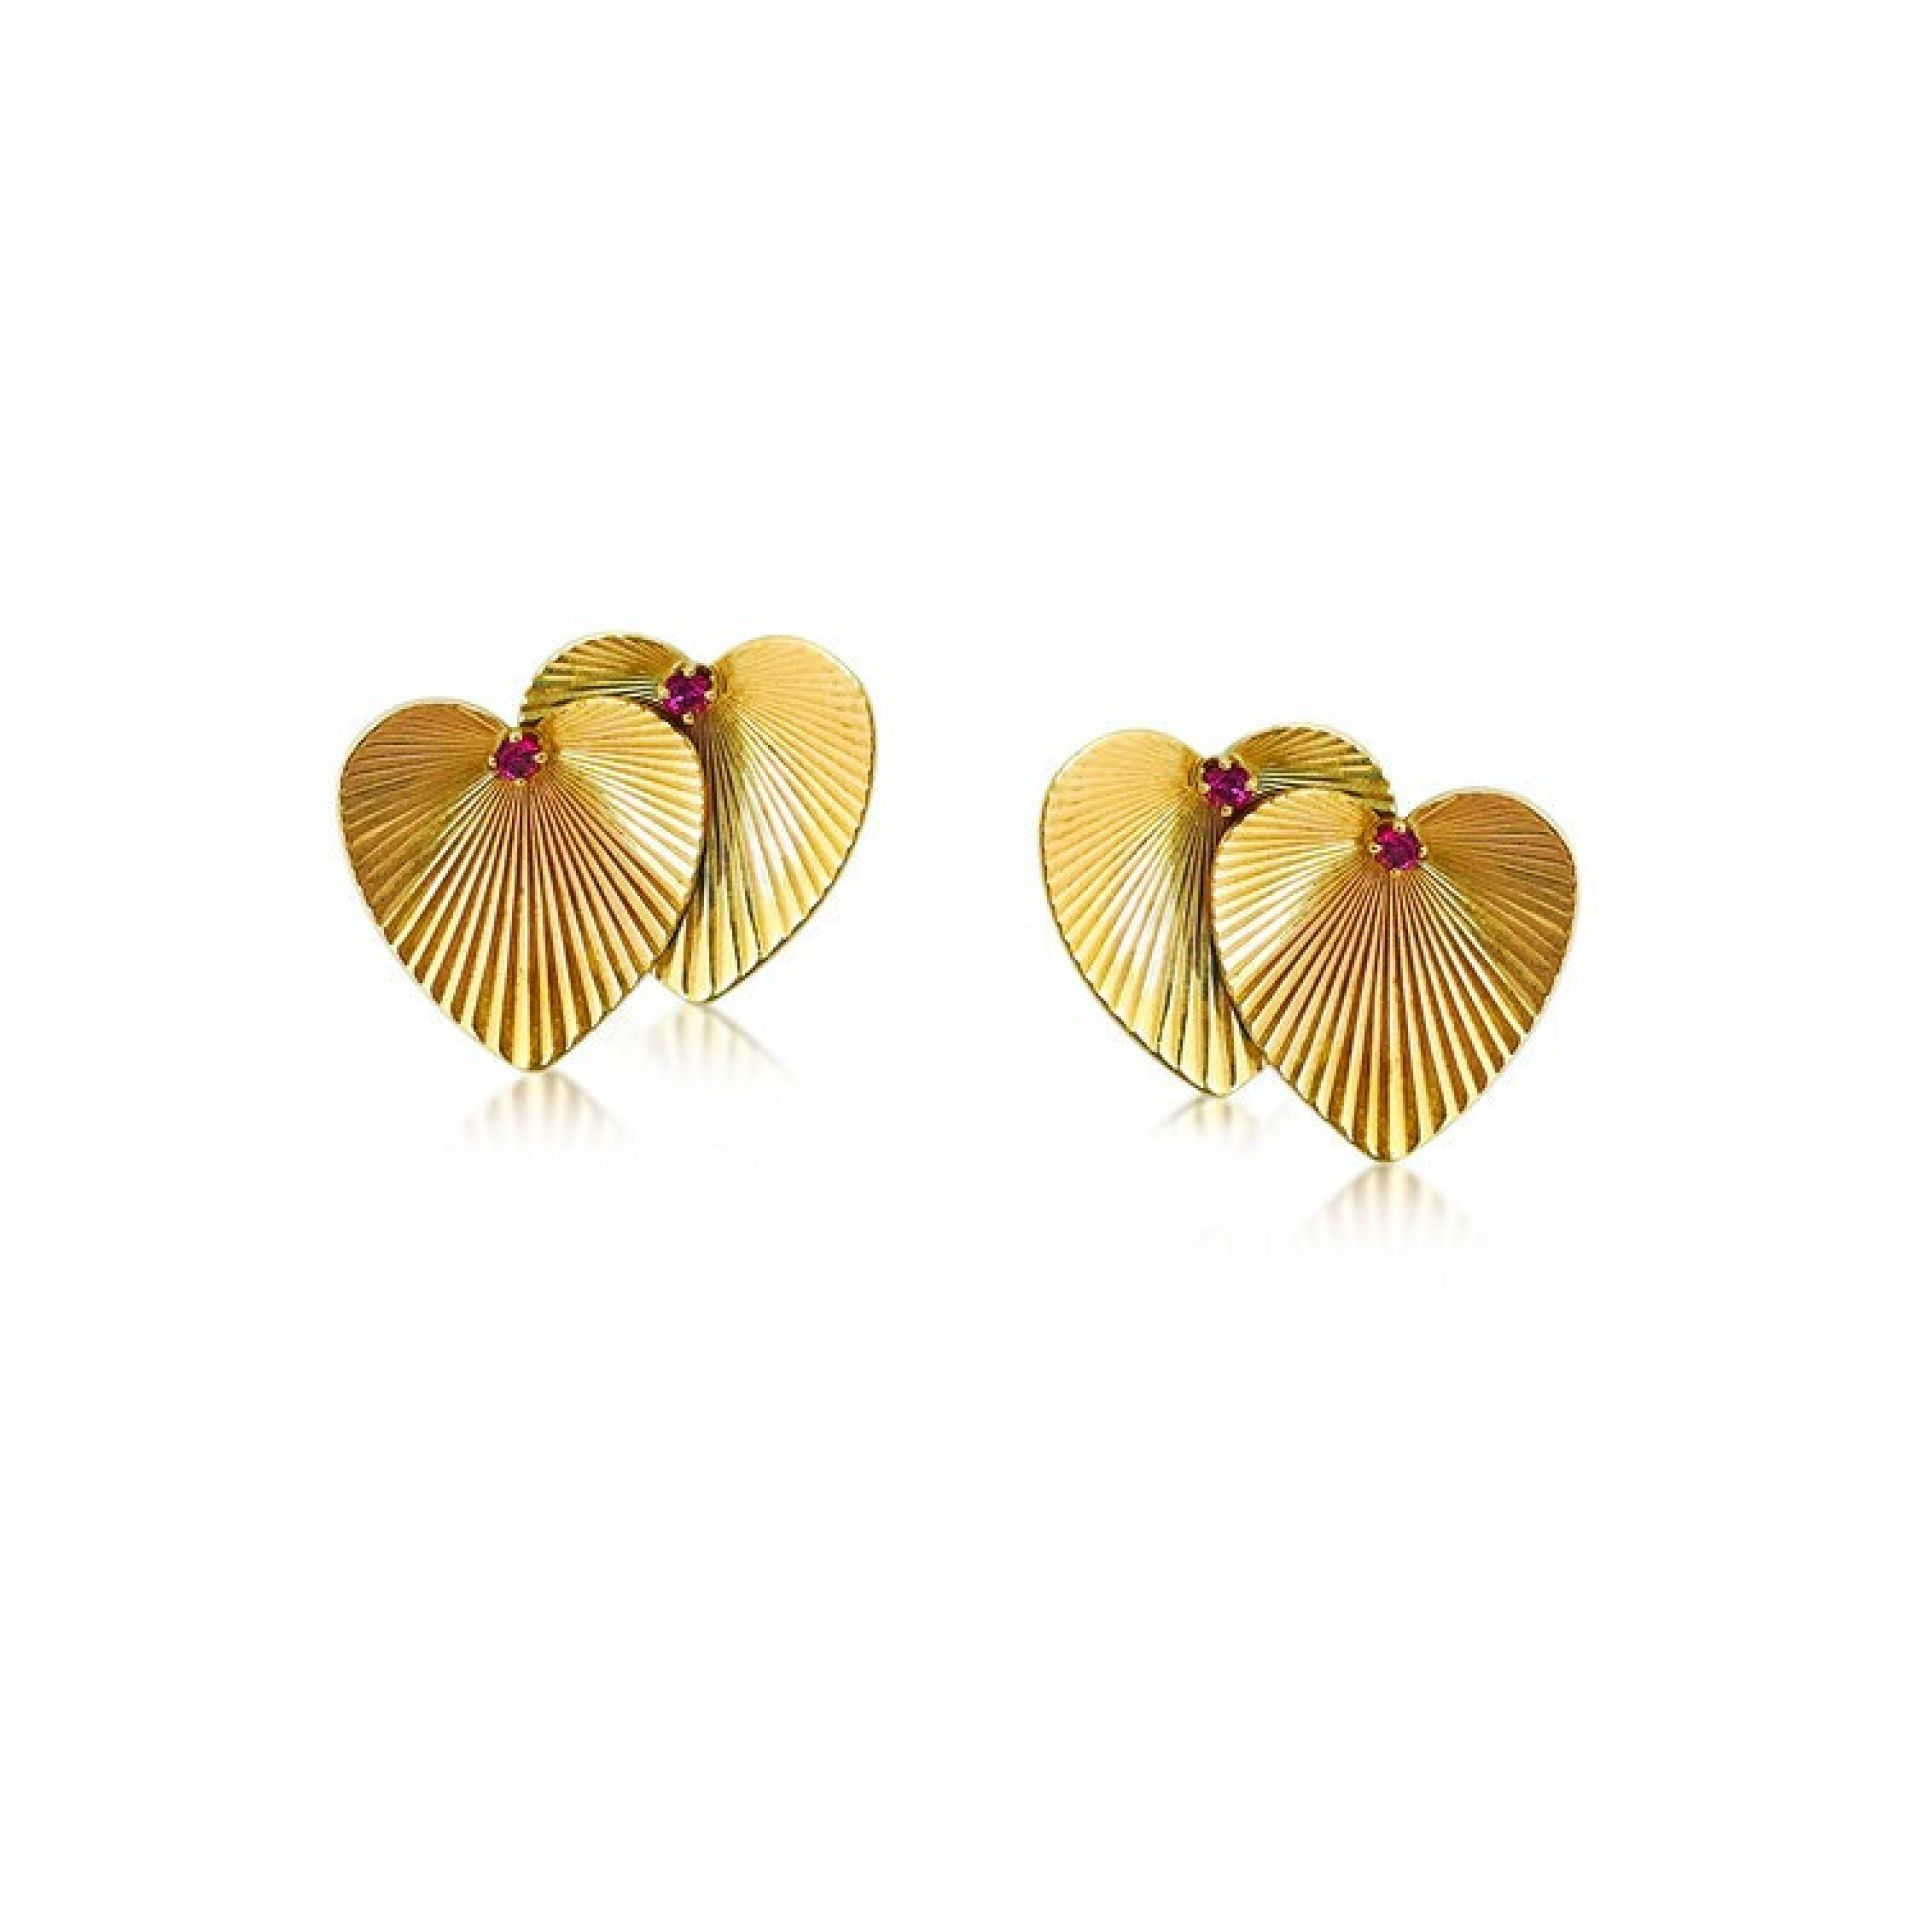 A PAIR OF DOUBLE HEART GOLD EARRINGS, BY TIFFANY & CO